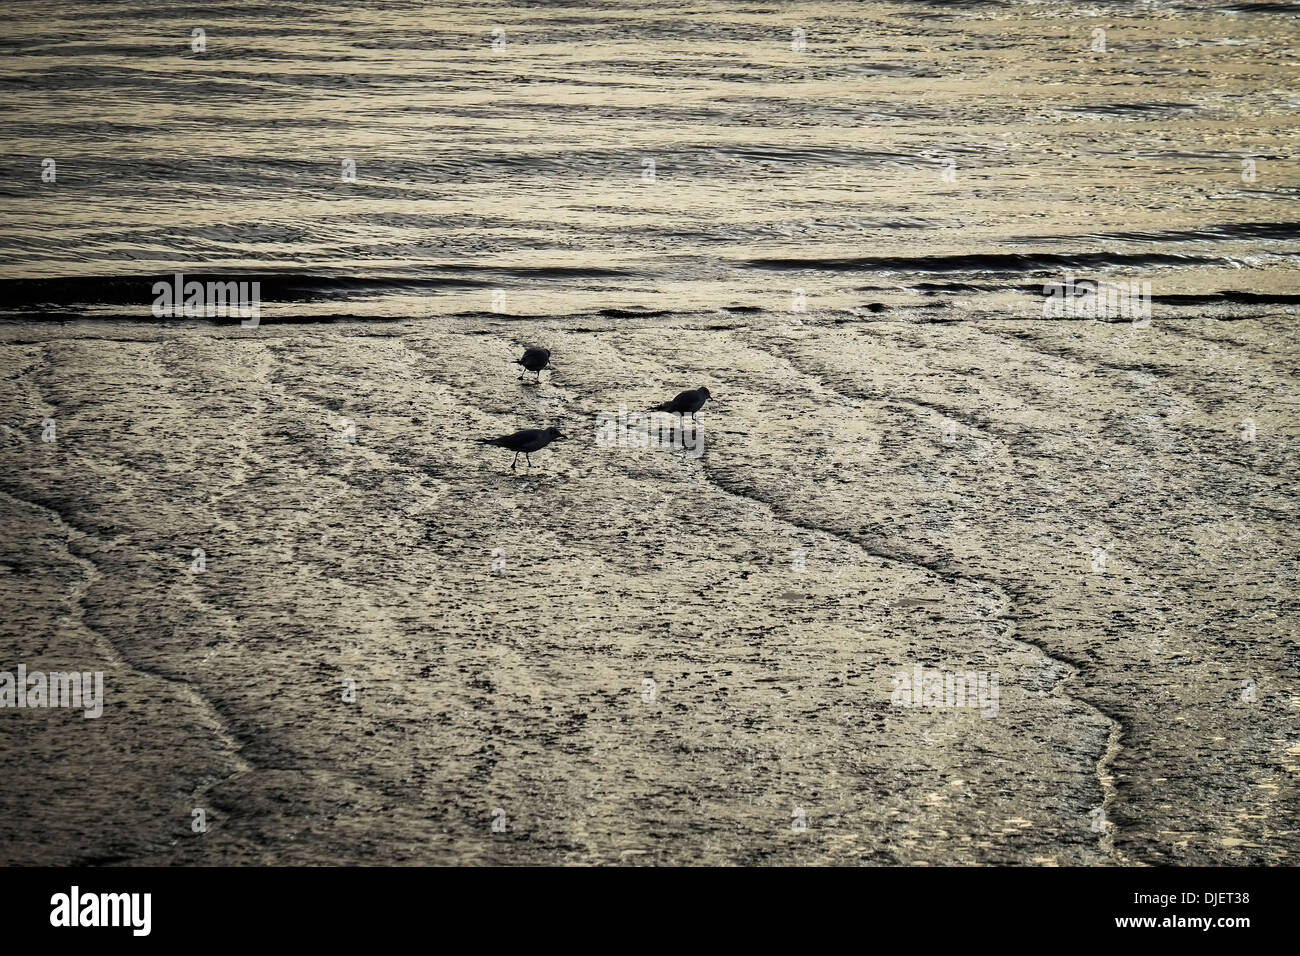 Sandpipers feeding on the foreshore of the River Thames at low tide. - Stock Image